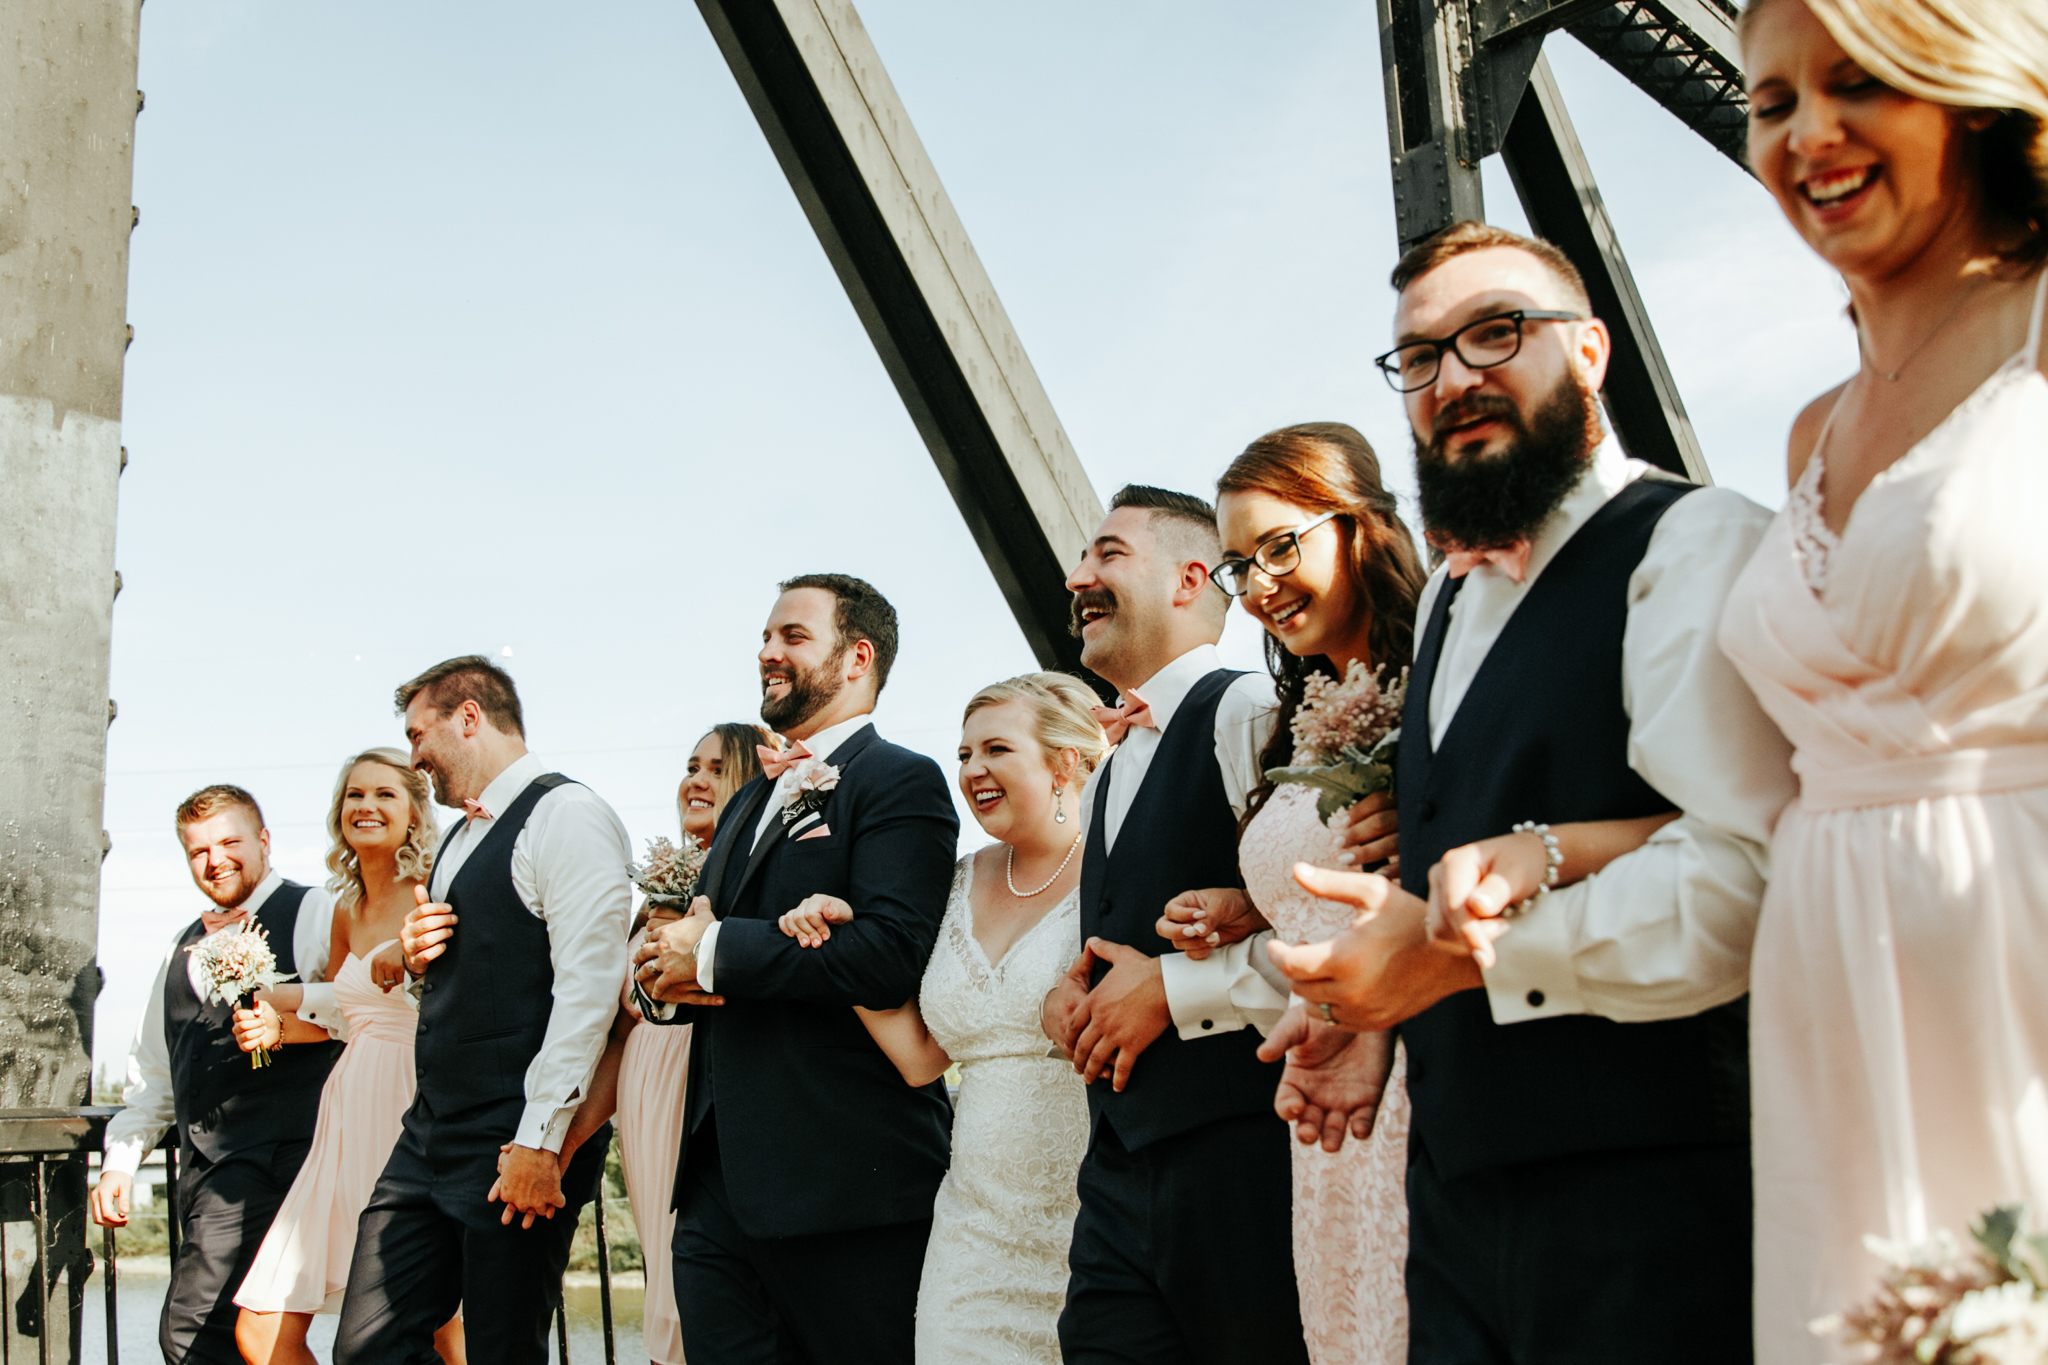 red-deer-wedding-photographer-love-and-be-loved-photography-emily-gab-photo-image-picture-179.jpg